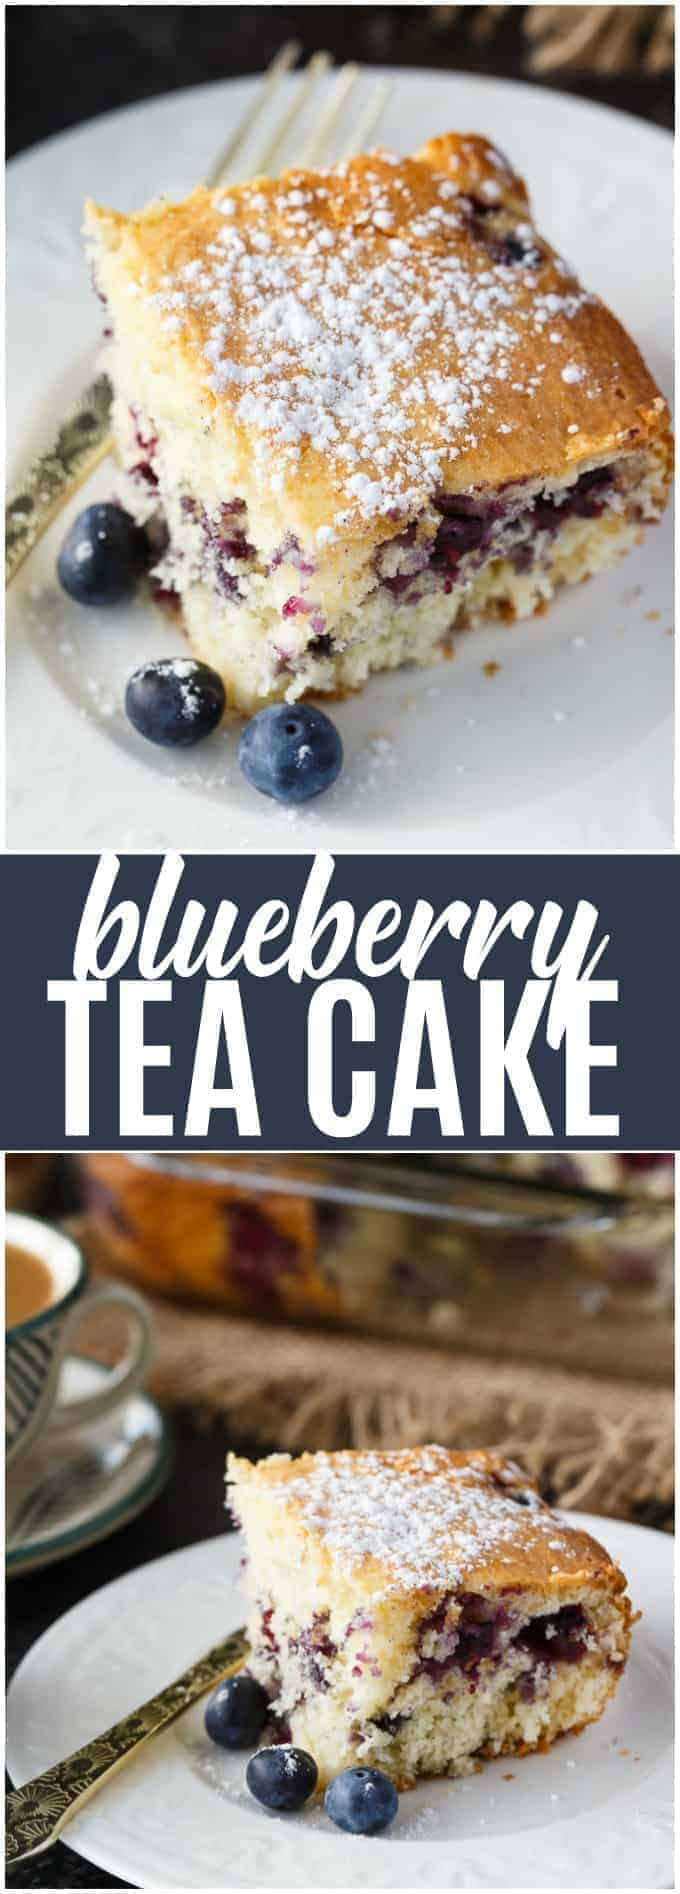 Blueberry Tea Cake - A light and elegant dessert perfect for high tea. Use fresh blueberries for a tangy, fruity treat.